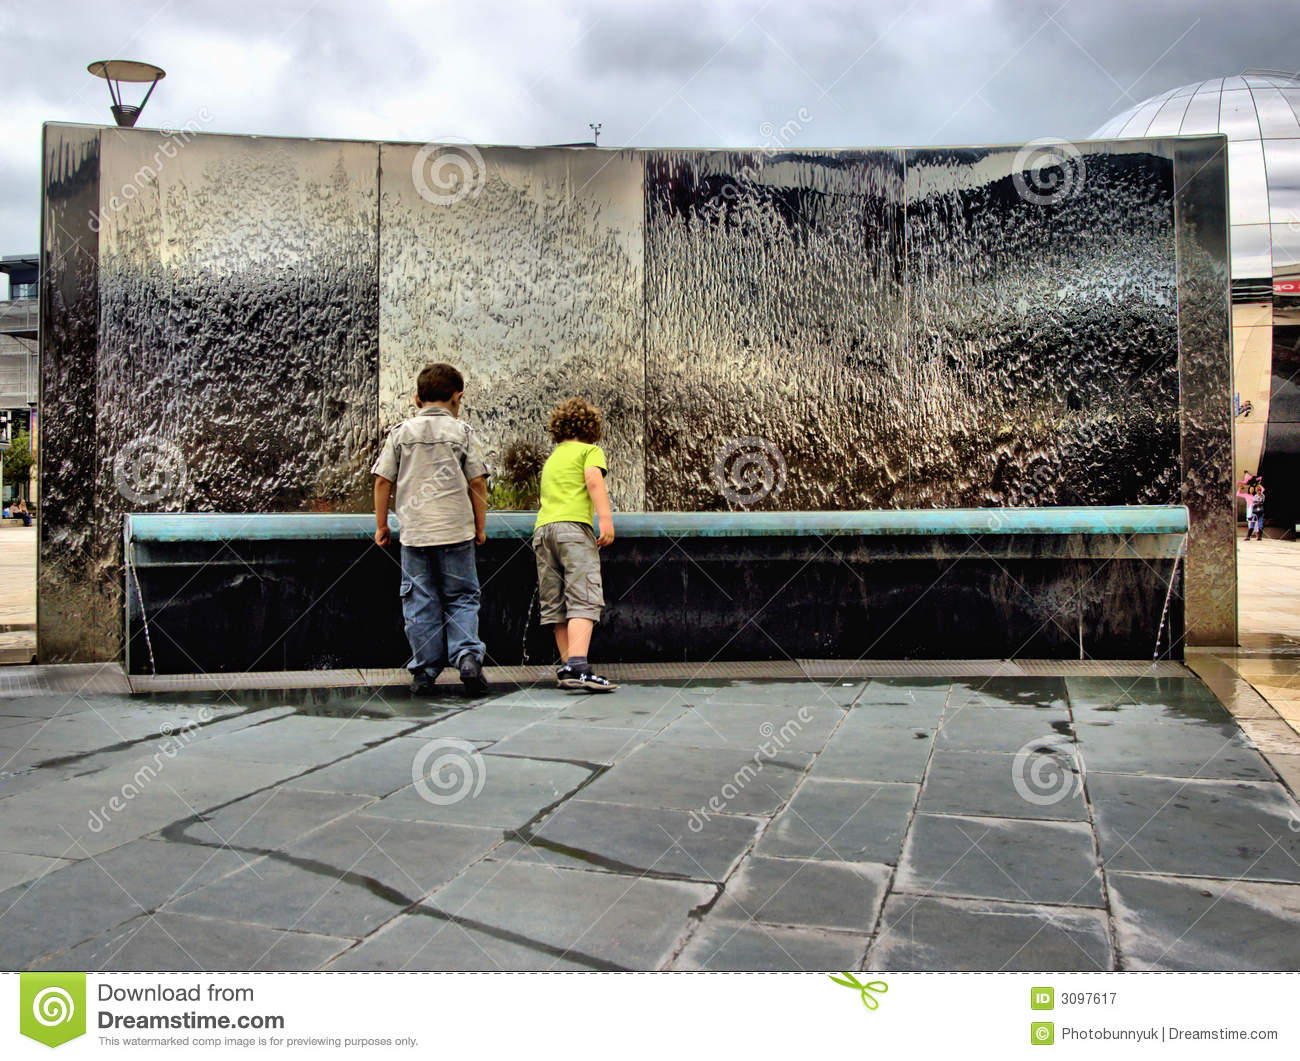 Children by water feature